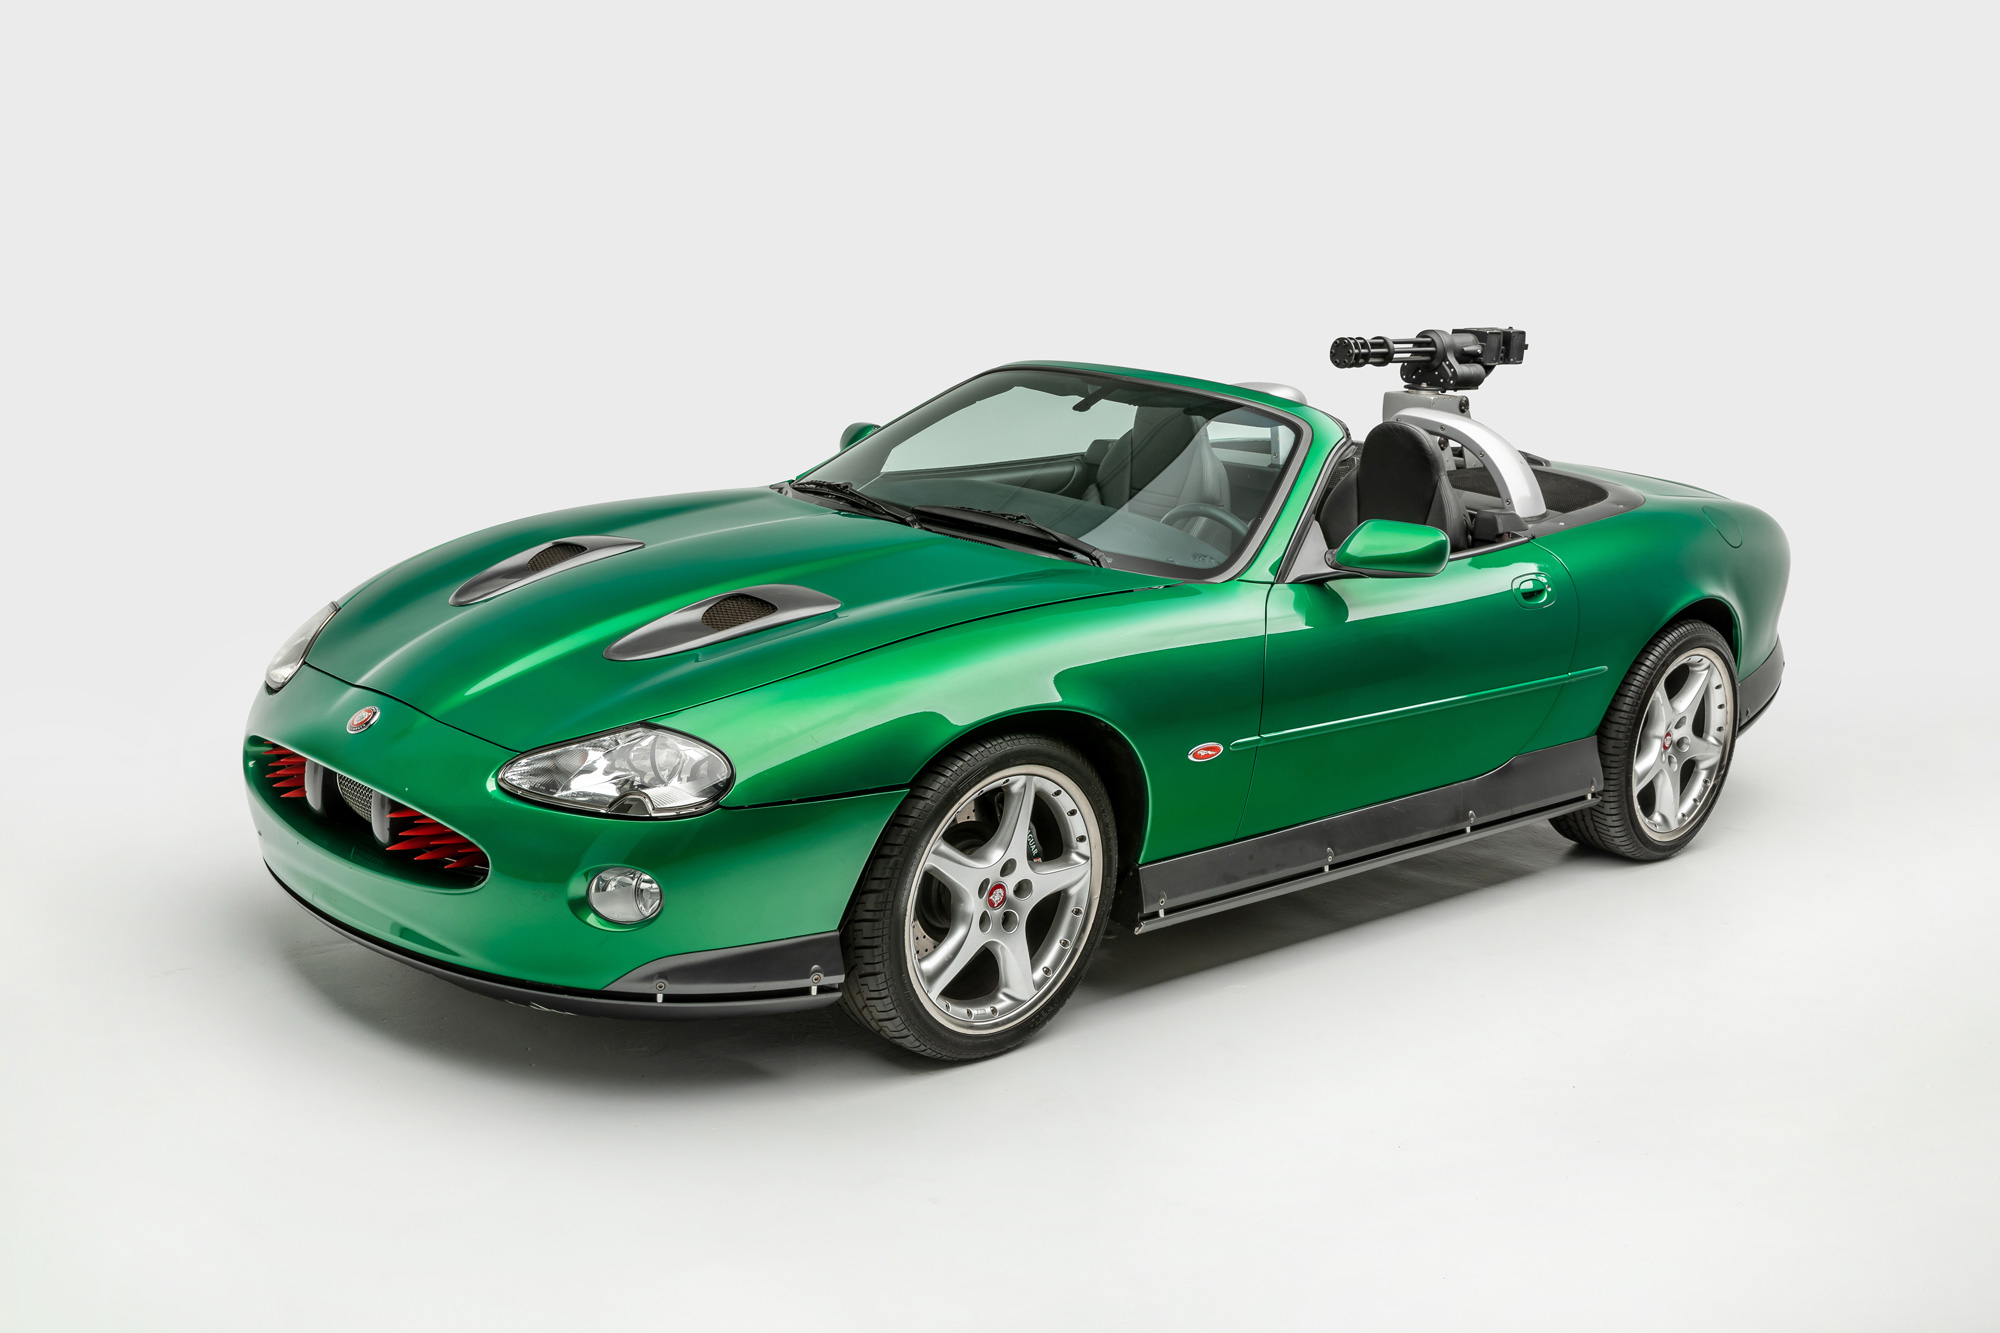 Zao's Jaguar XKR Die Another Day